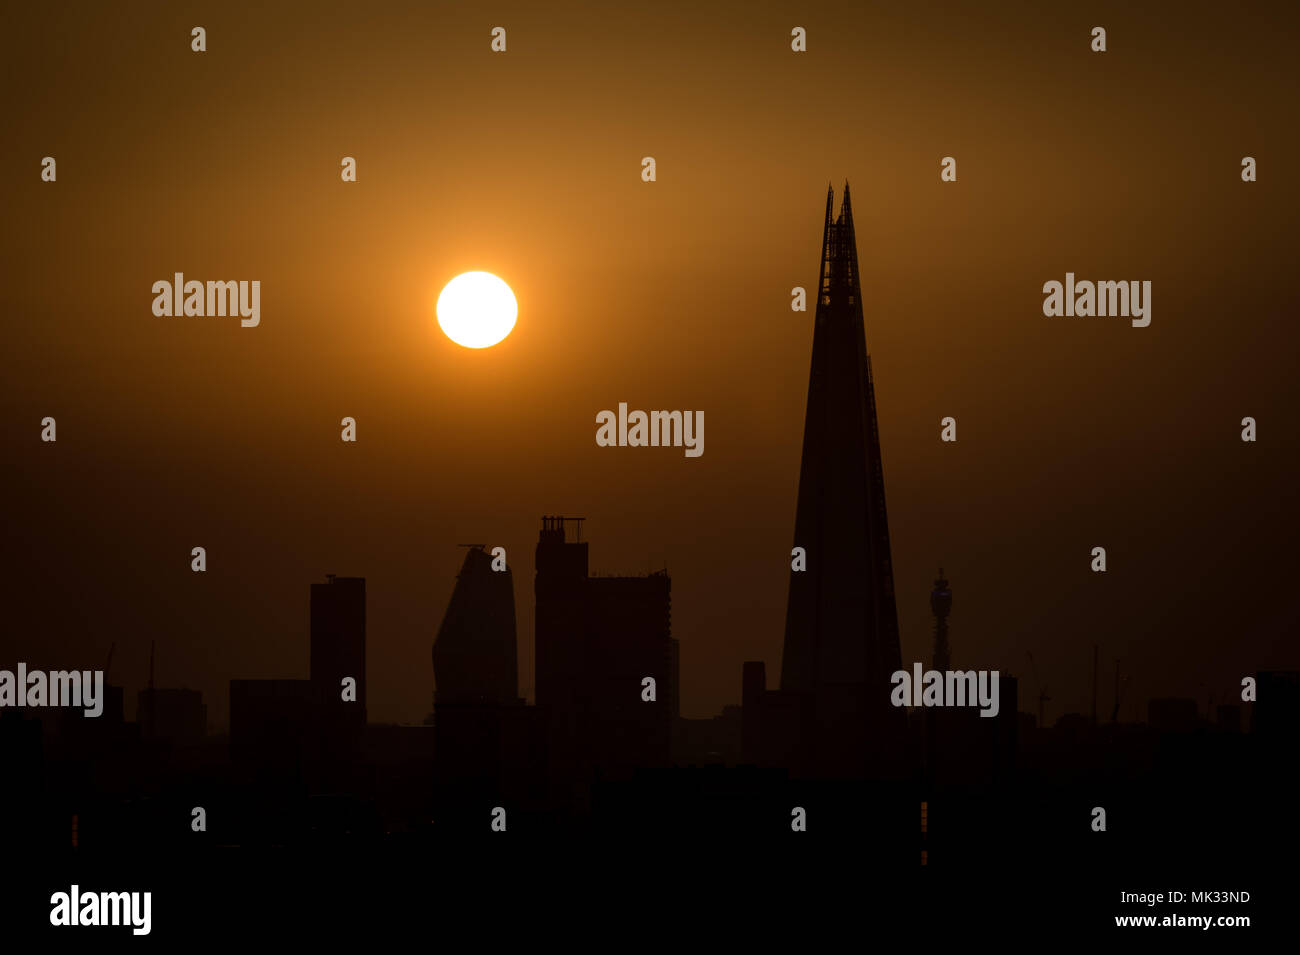 London, UK. 6th May, 2018. UK Weather: The sun sets over the city near the Shard skyscraper ending a warm Sunday with temperatures peaking over 25C. © Guy Corbishley/Alamy Live News - Stock Image